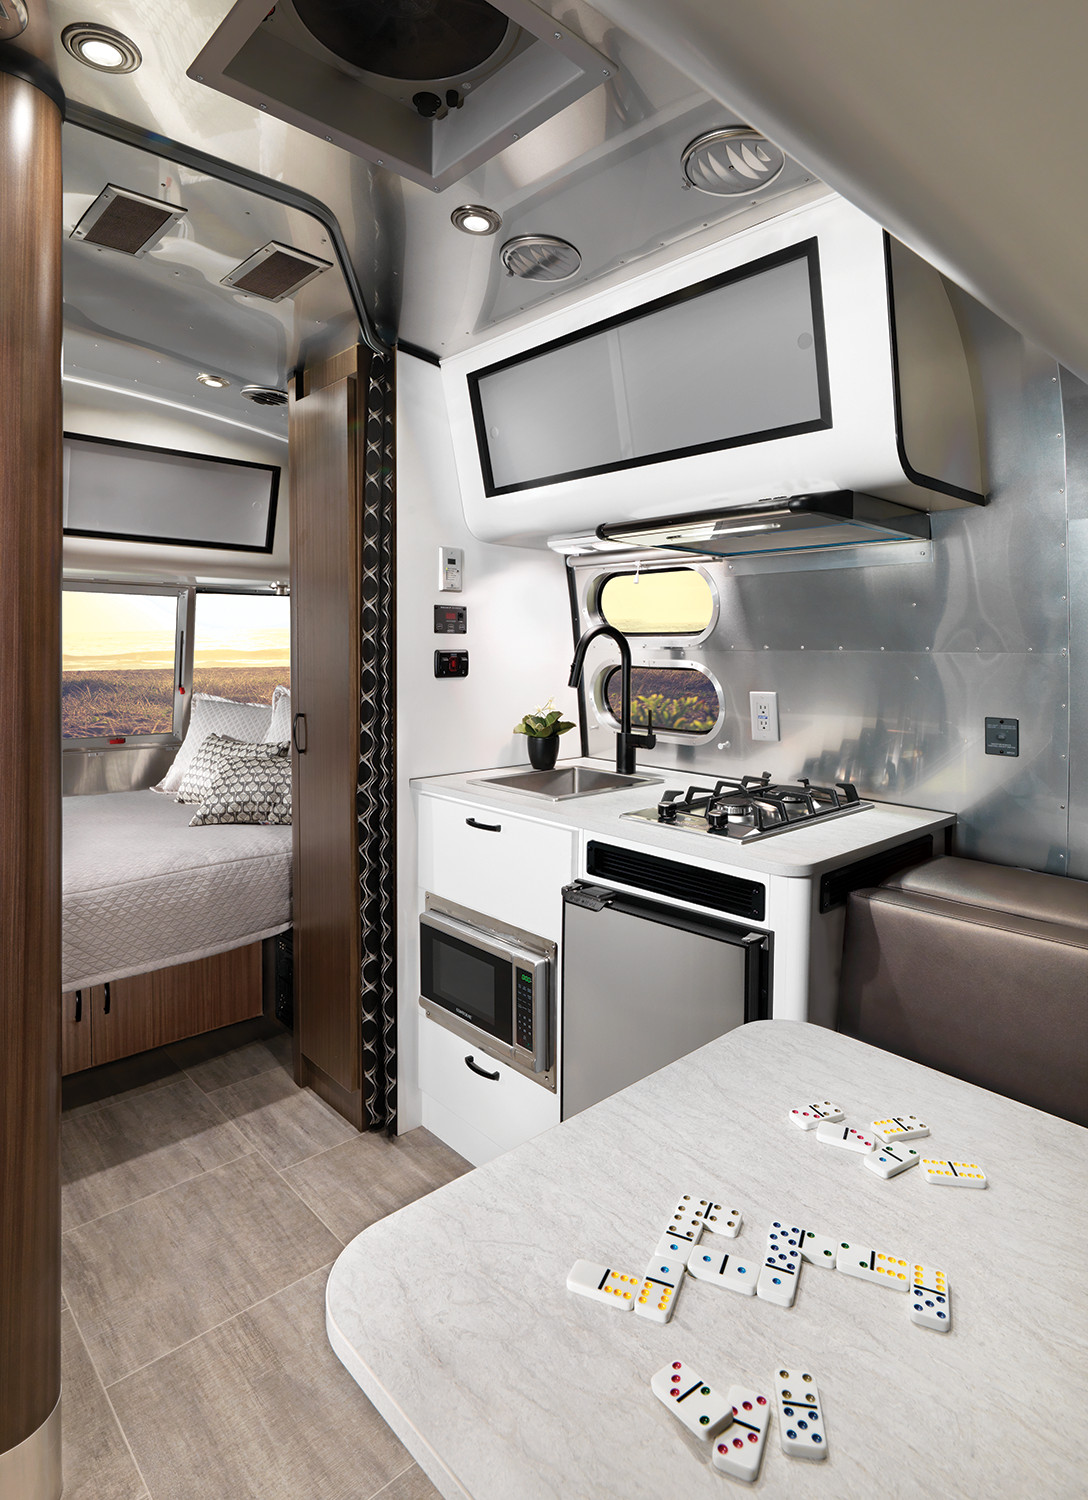 Airstream debuts two new compact travel trailers - Curbed